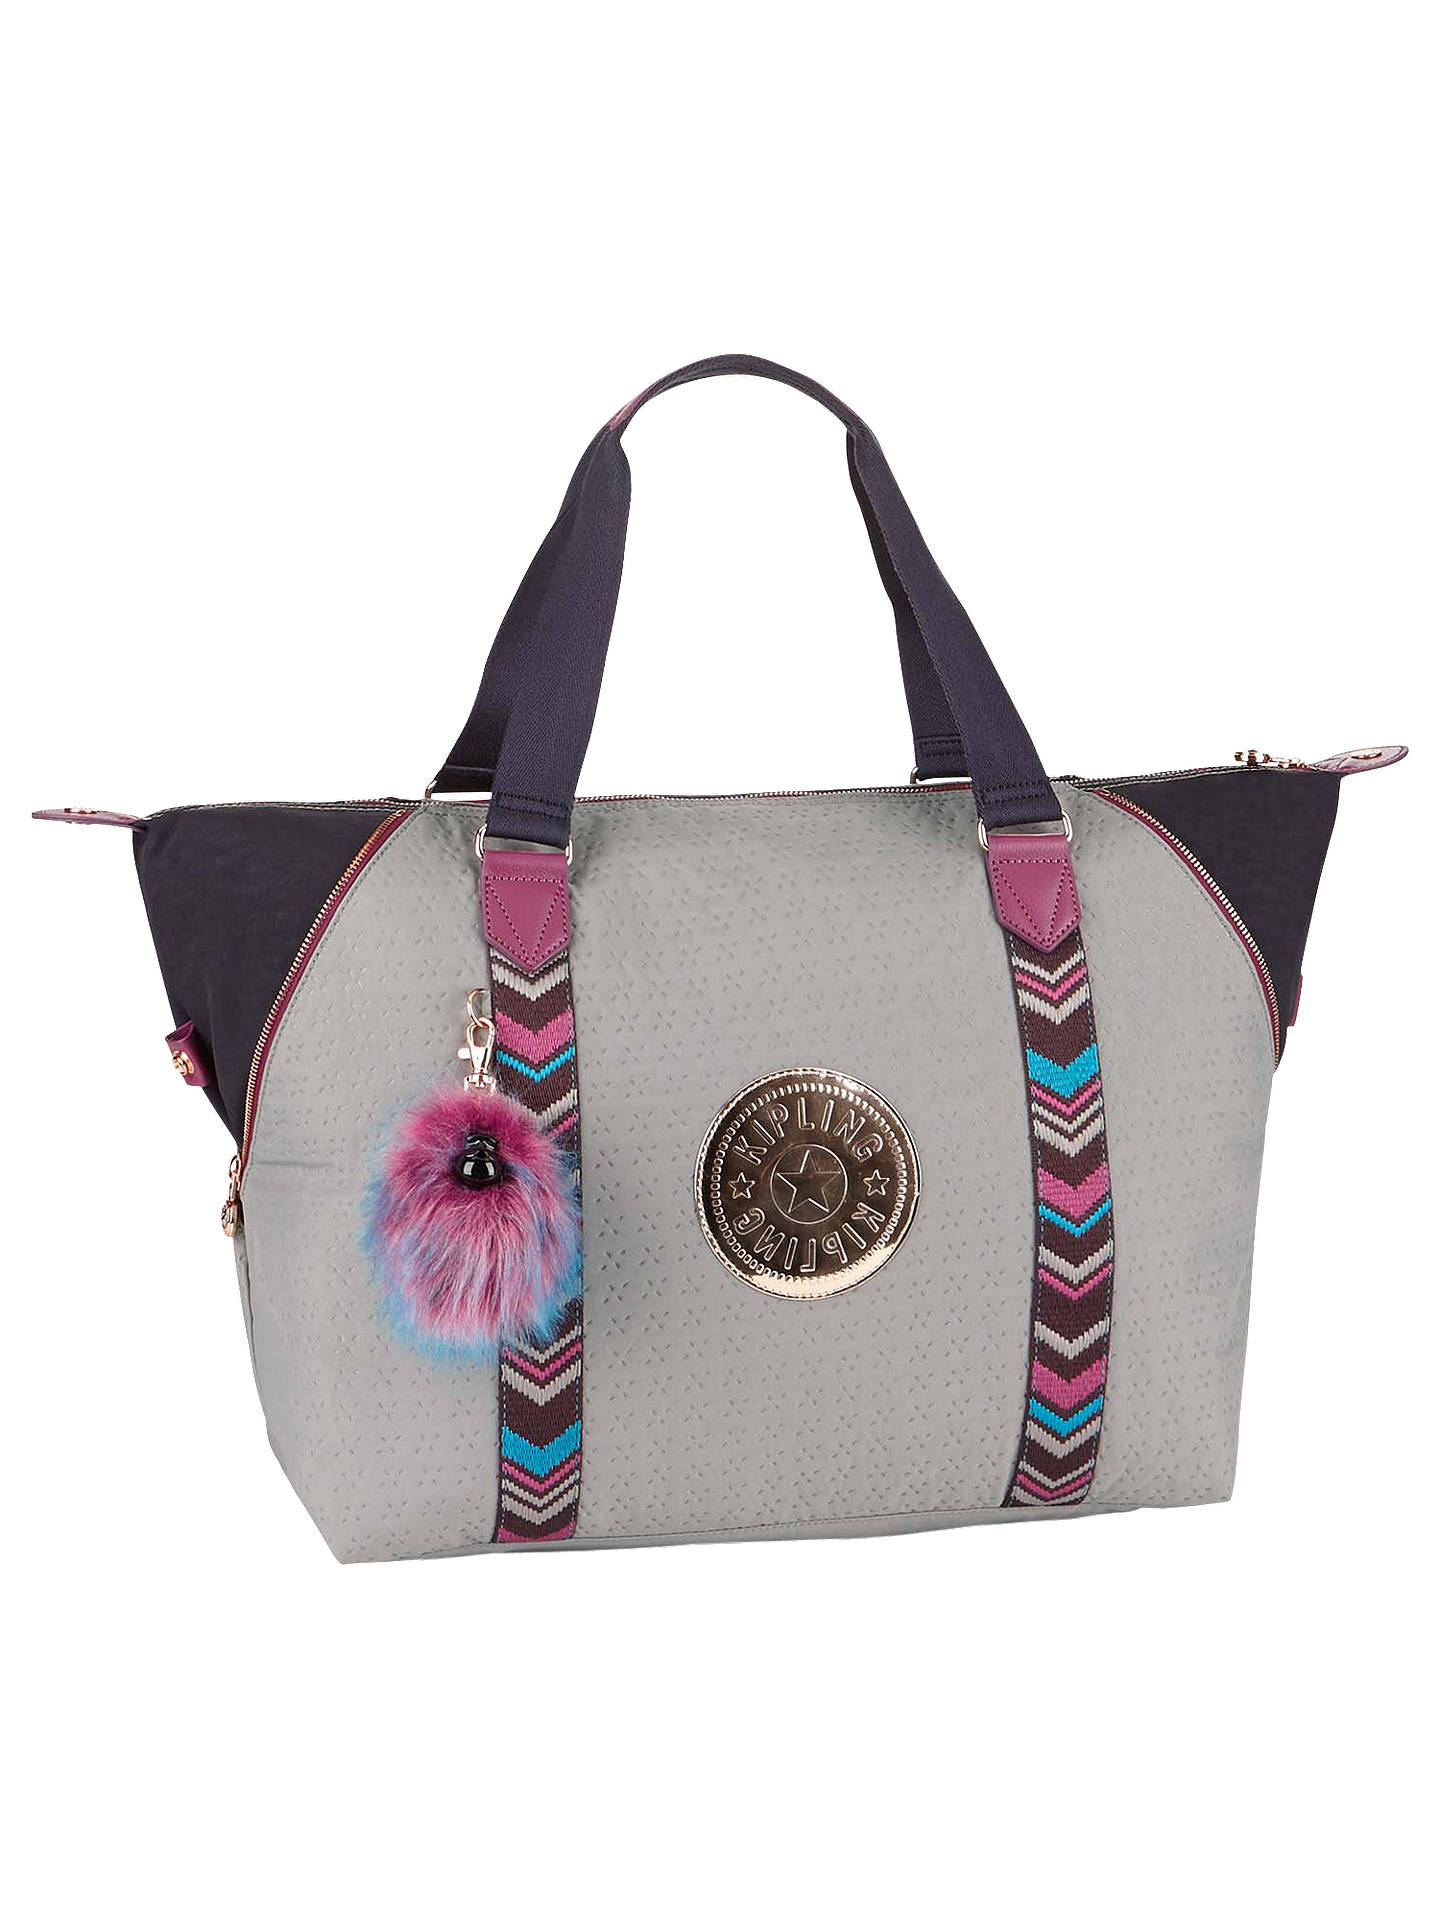 5f66e59102 Buy Kipling Art M Travel Tote Bag, Grey/Multi Online at johnlewis.com ...